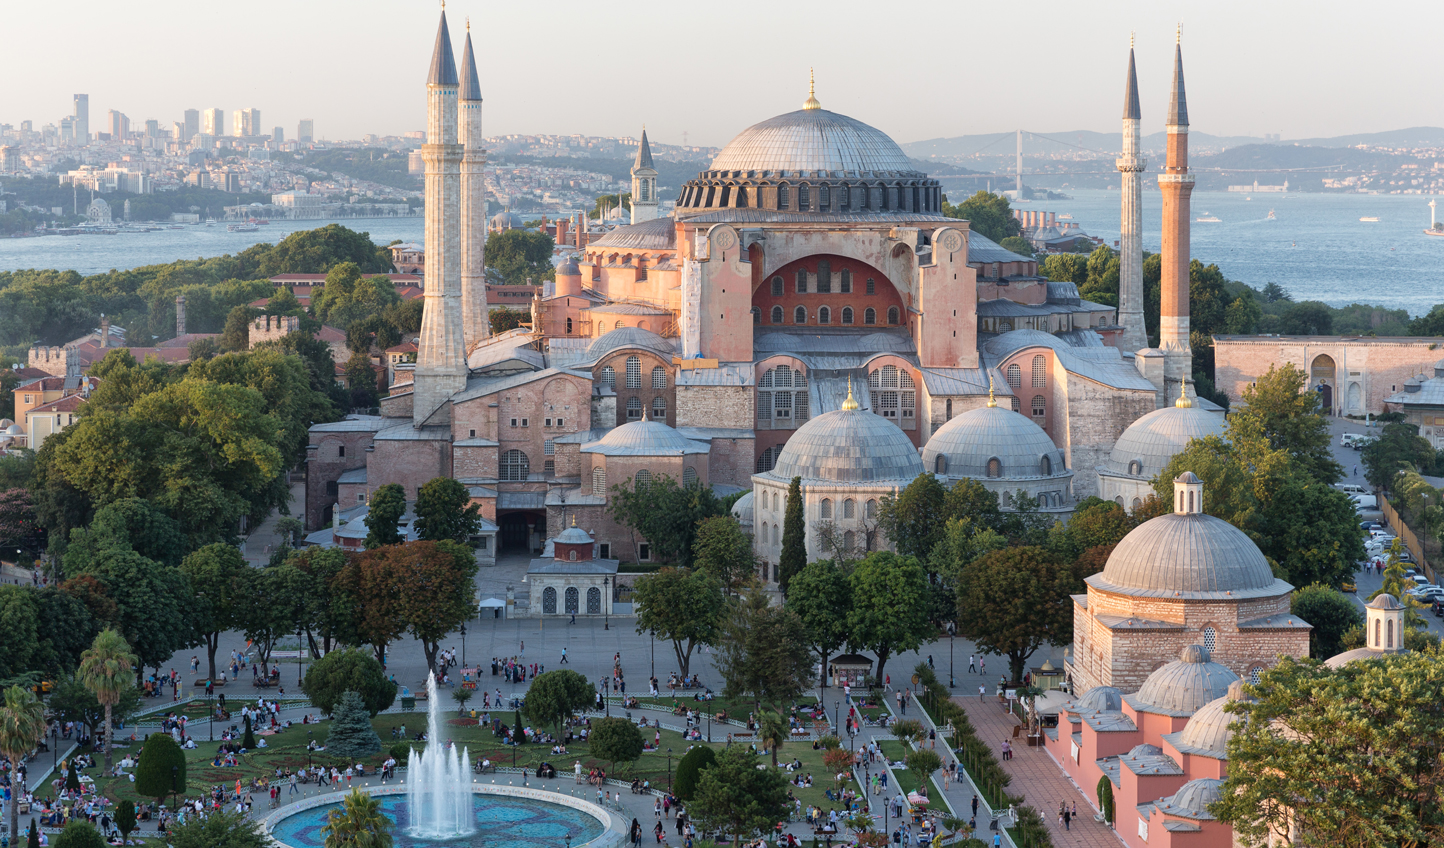 An architectural icon the world over, feast your eyes on the Aya Sofya